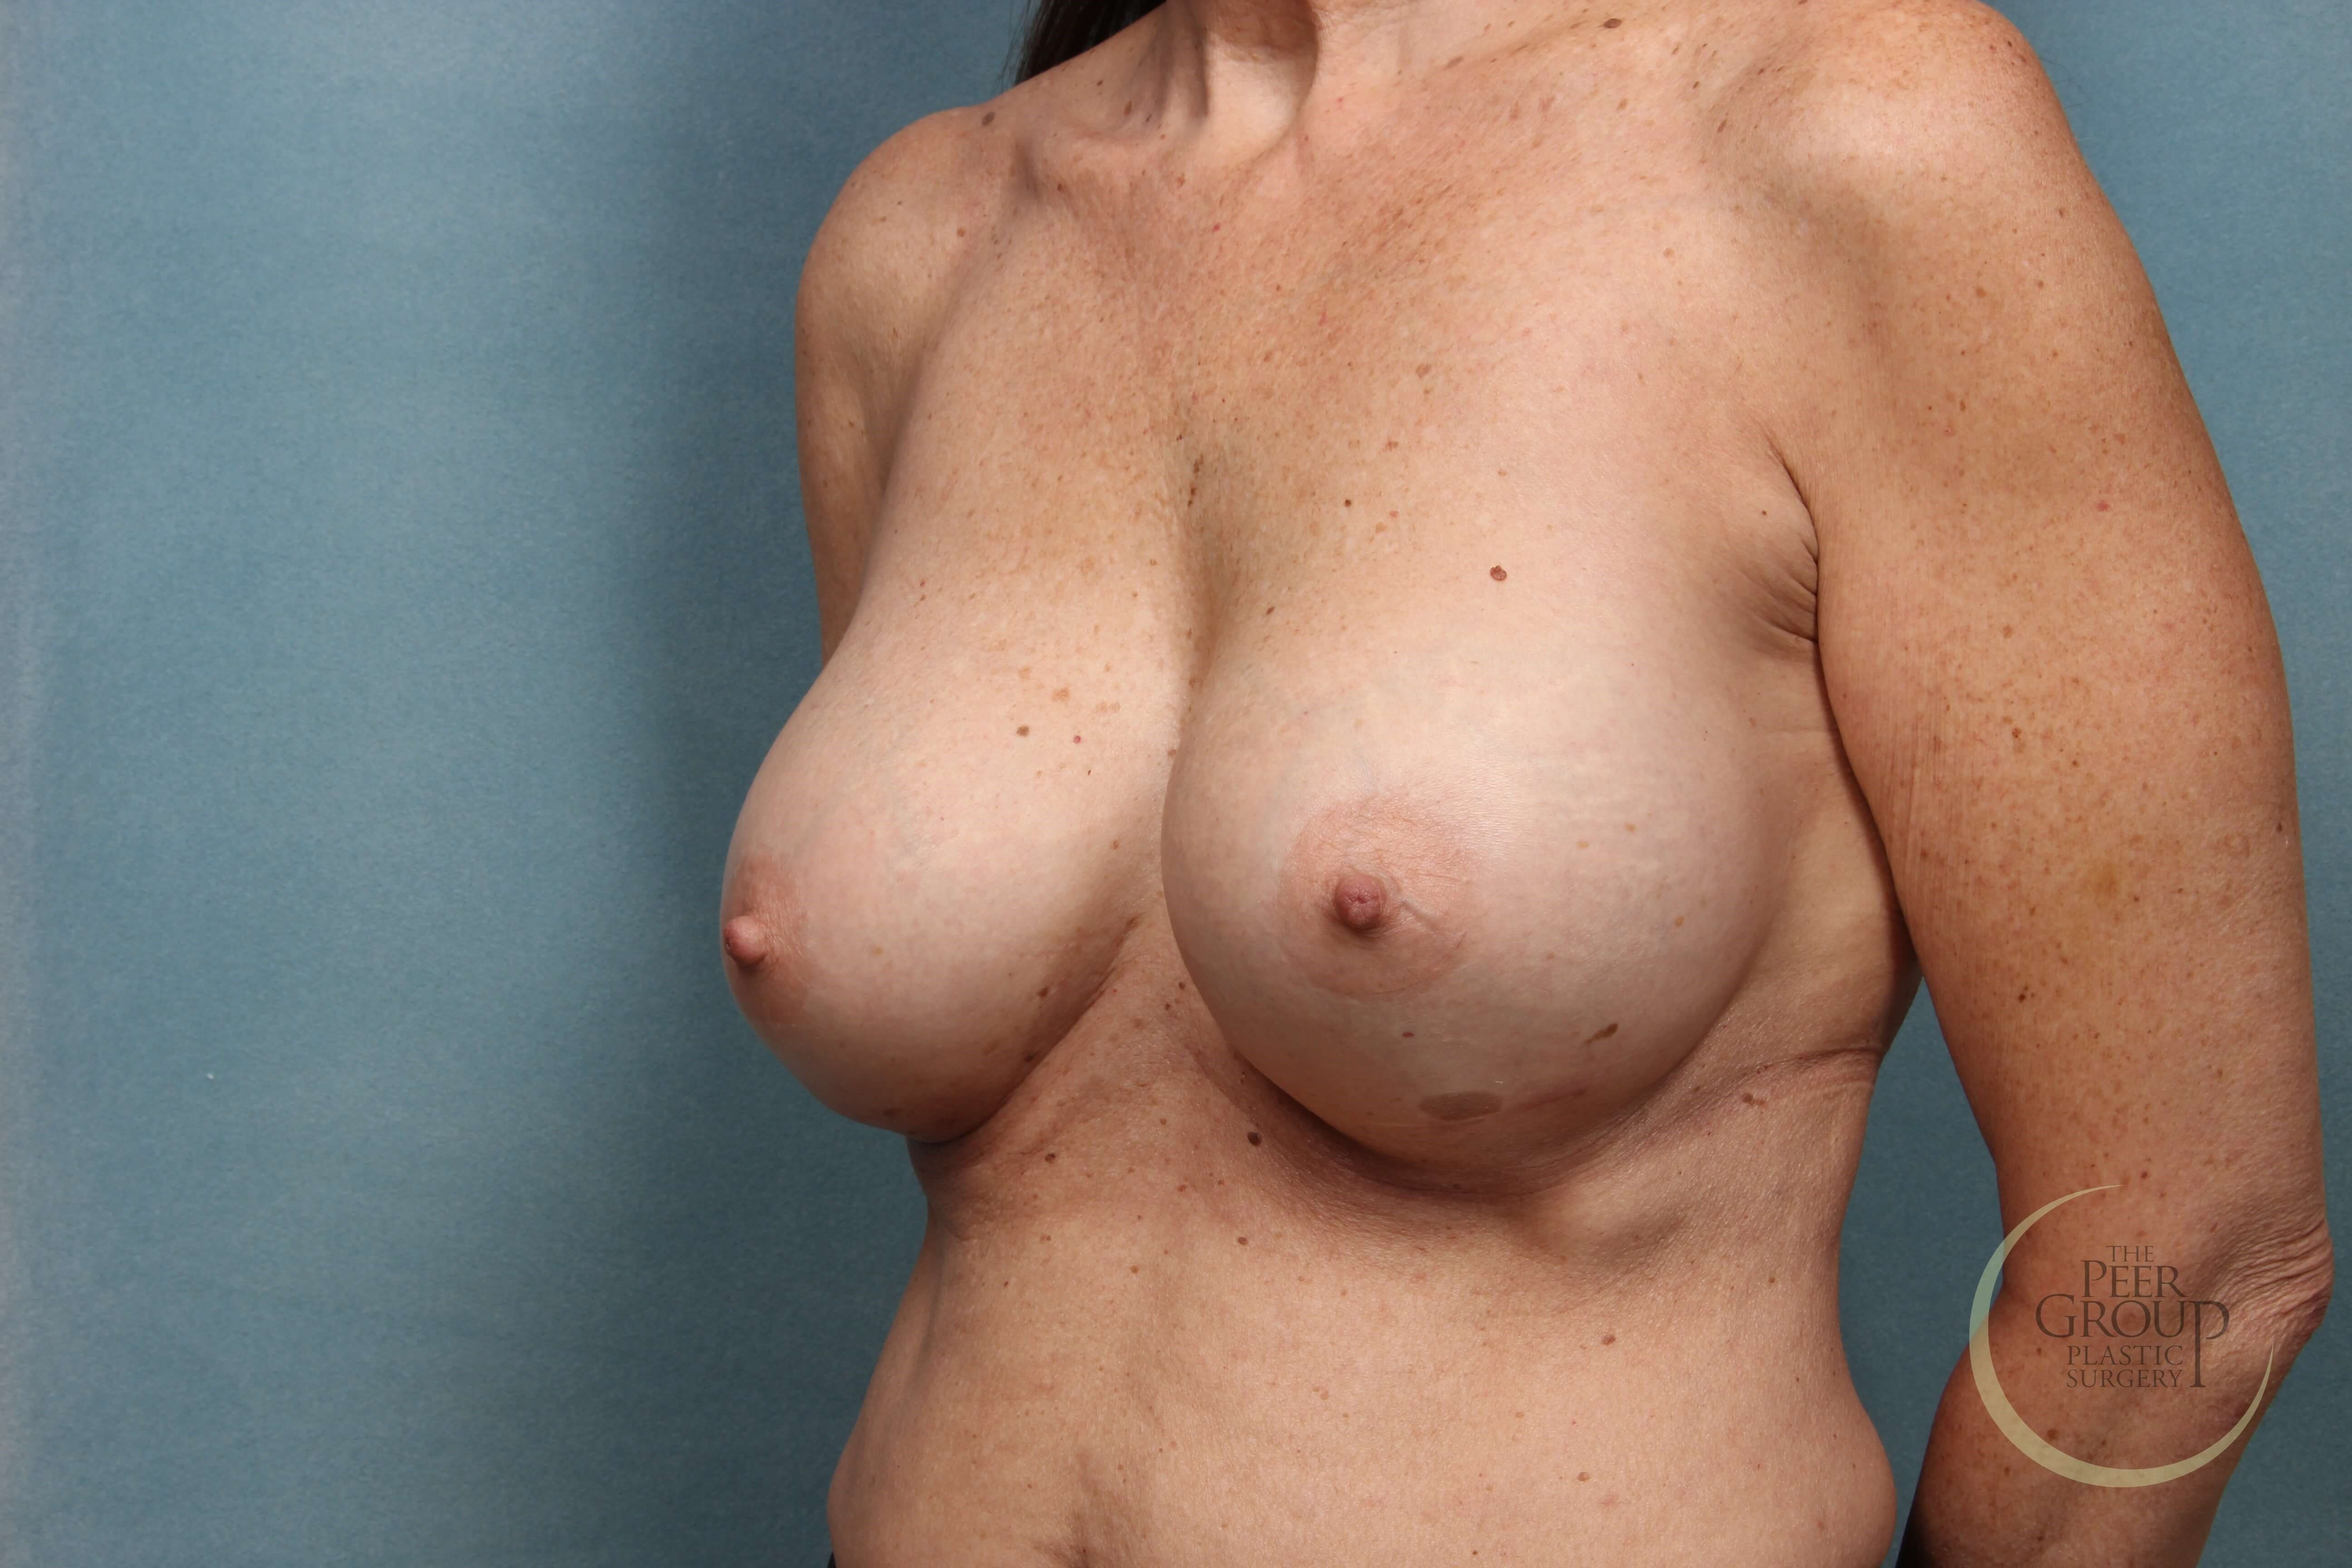 NJ Breast Augmentation D Cup After Implants